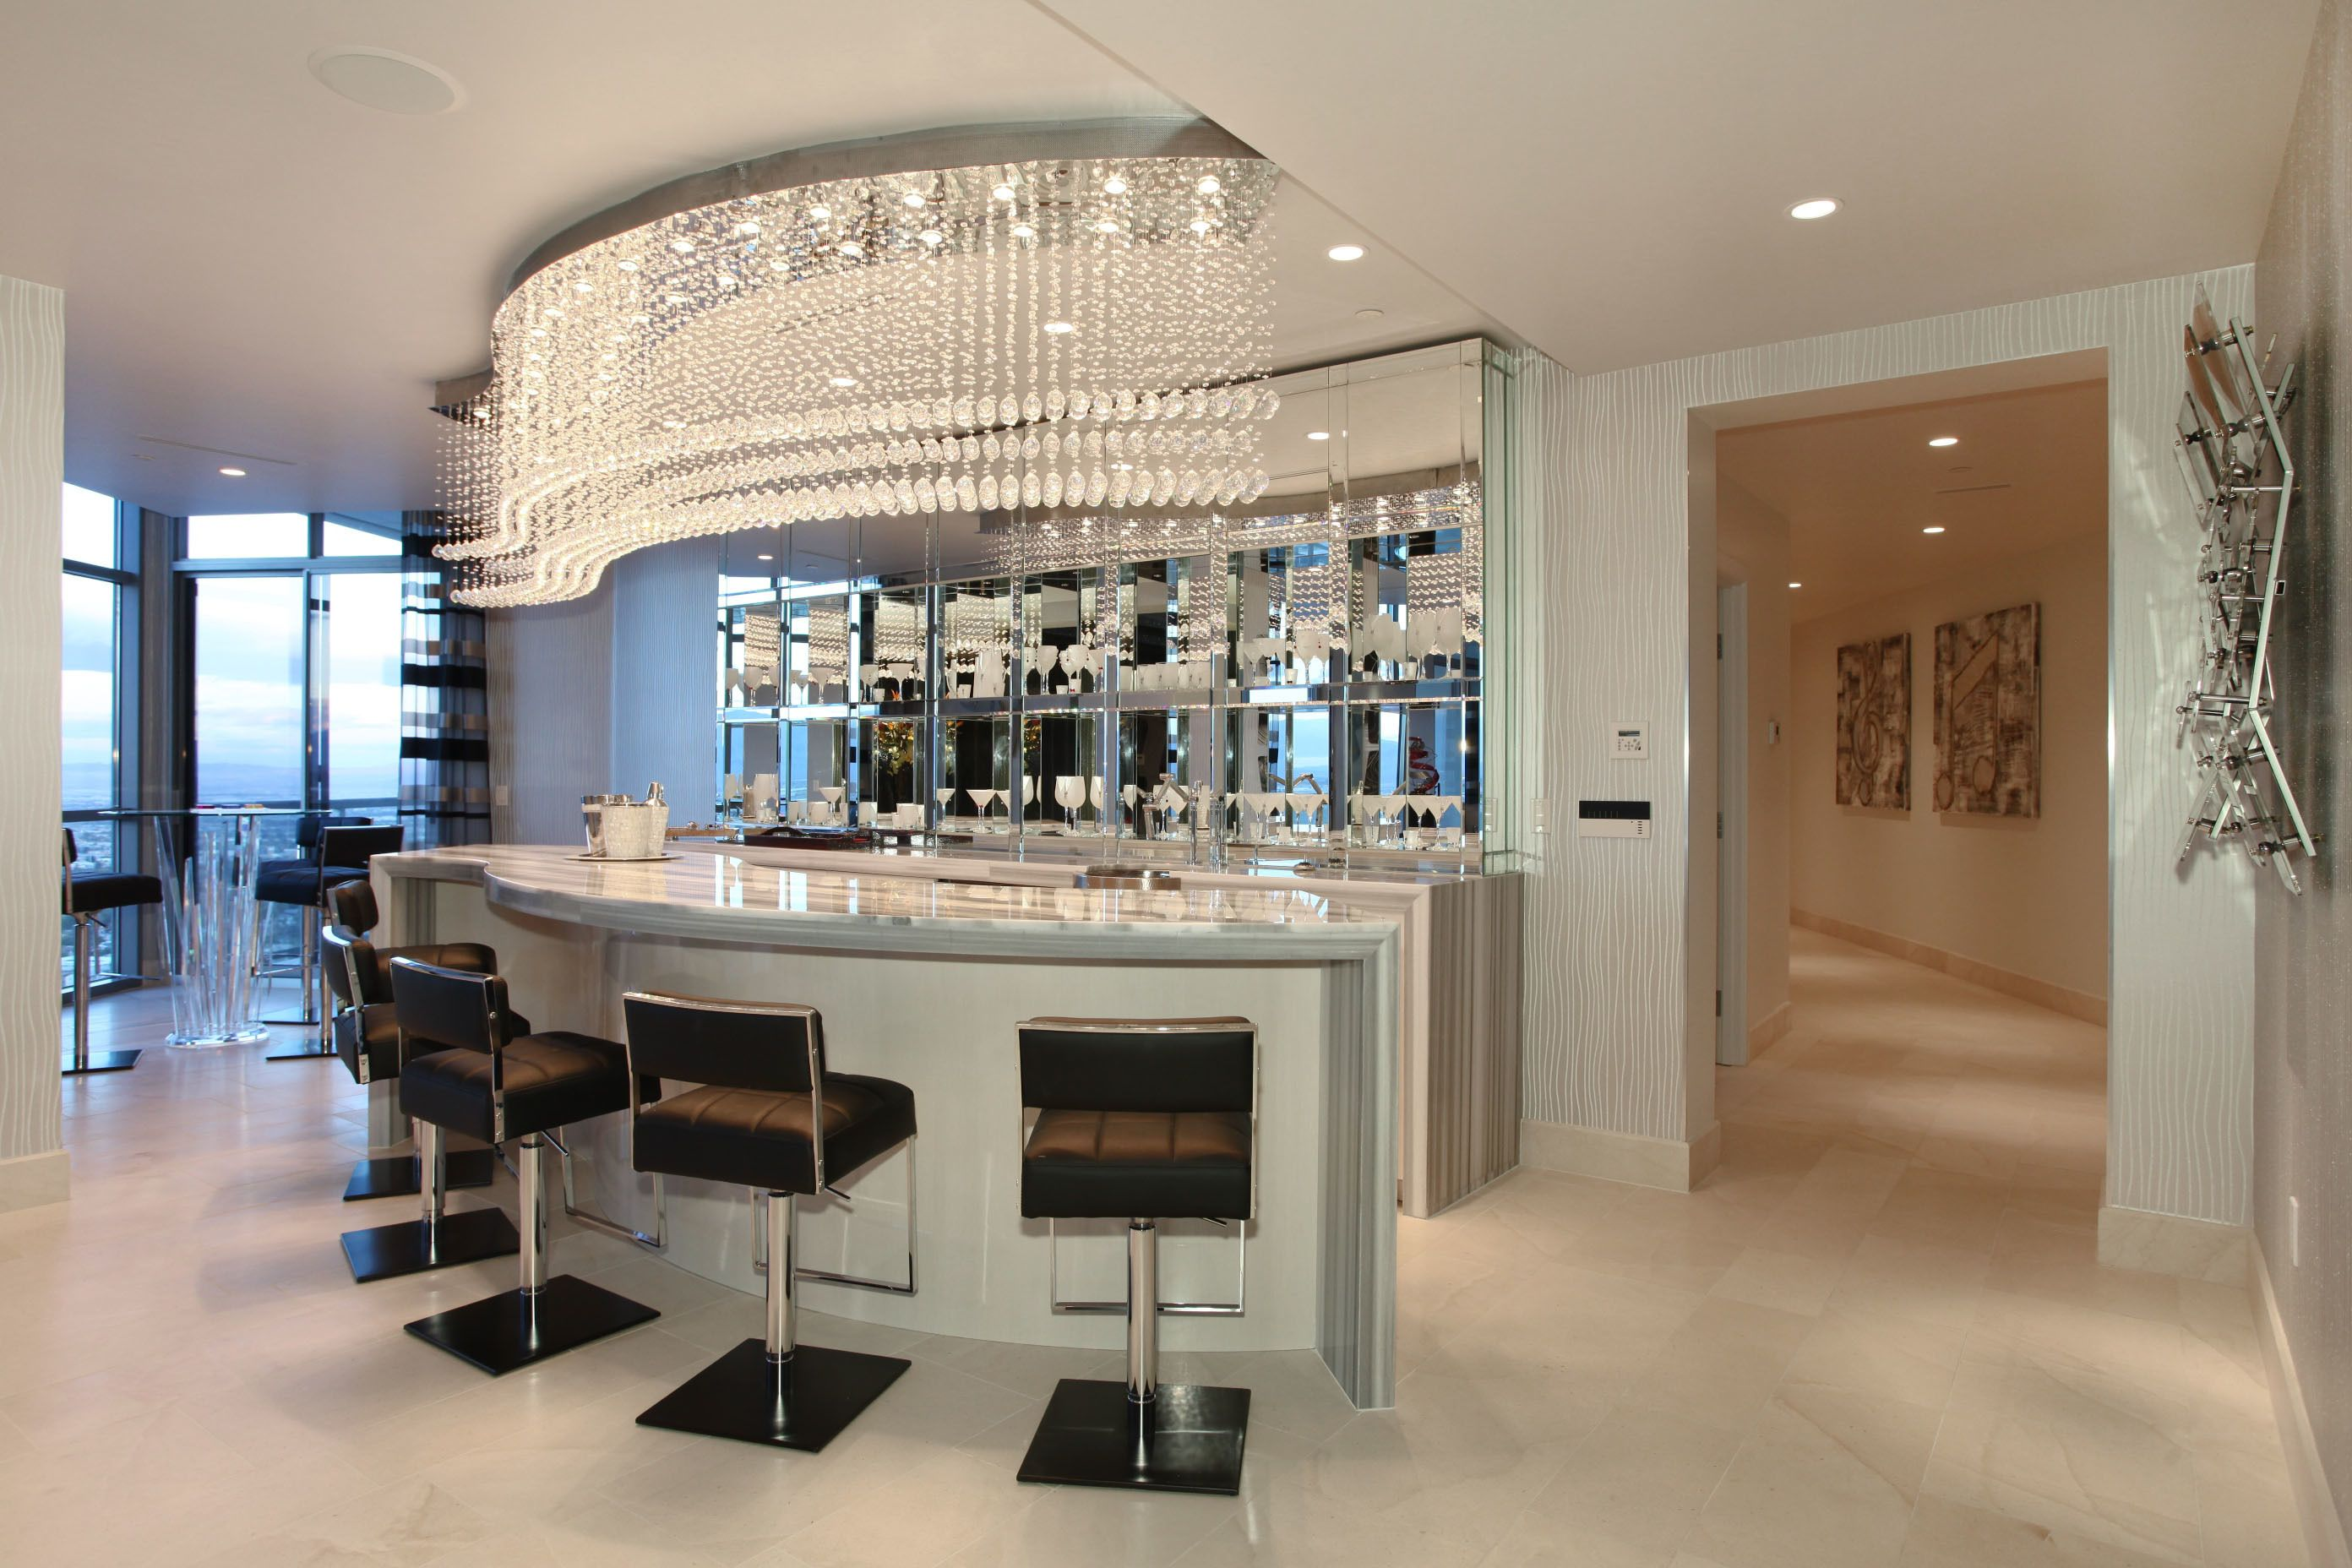 Superieur Bar Interior Room Bar Bar Desk Chair Design Wallpaper | 2784x1856 | 126125  | WallpaperUP